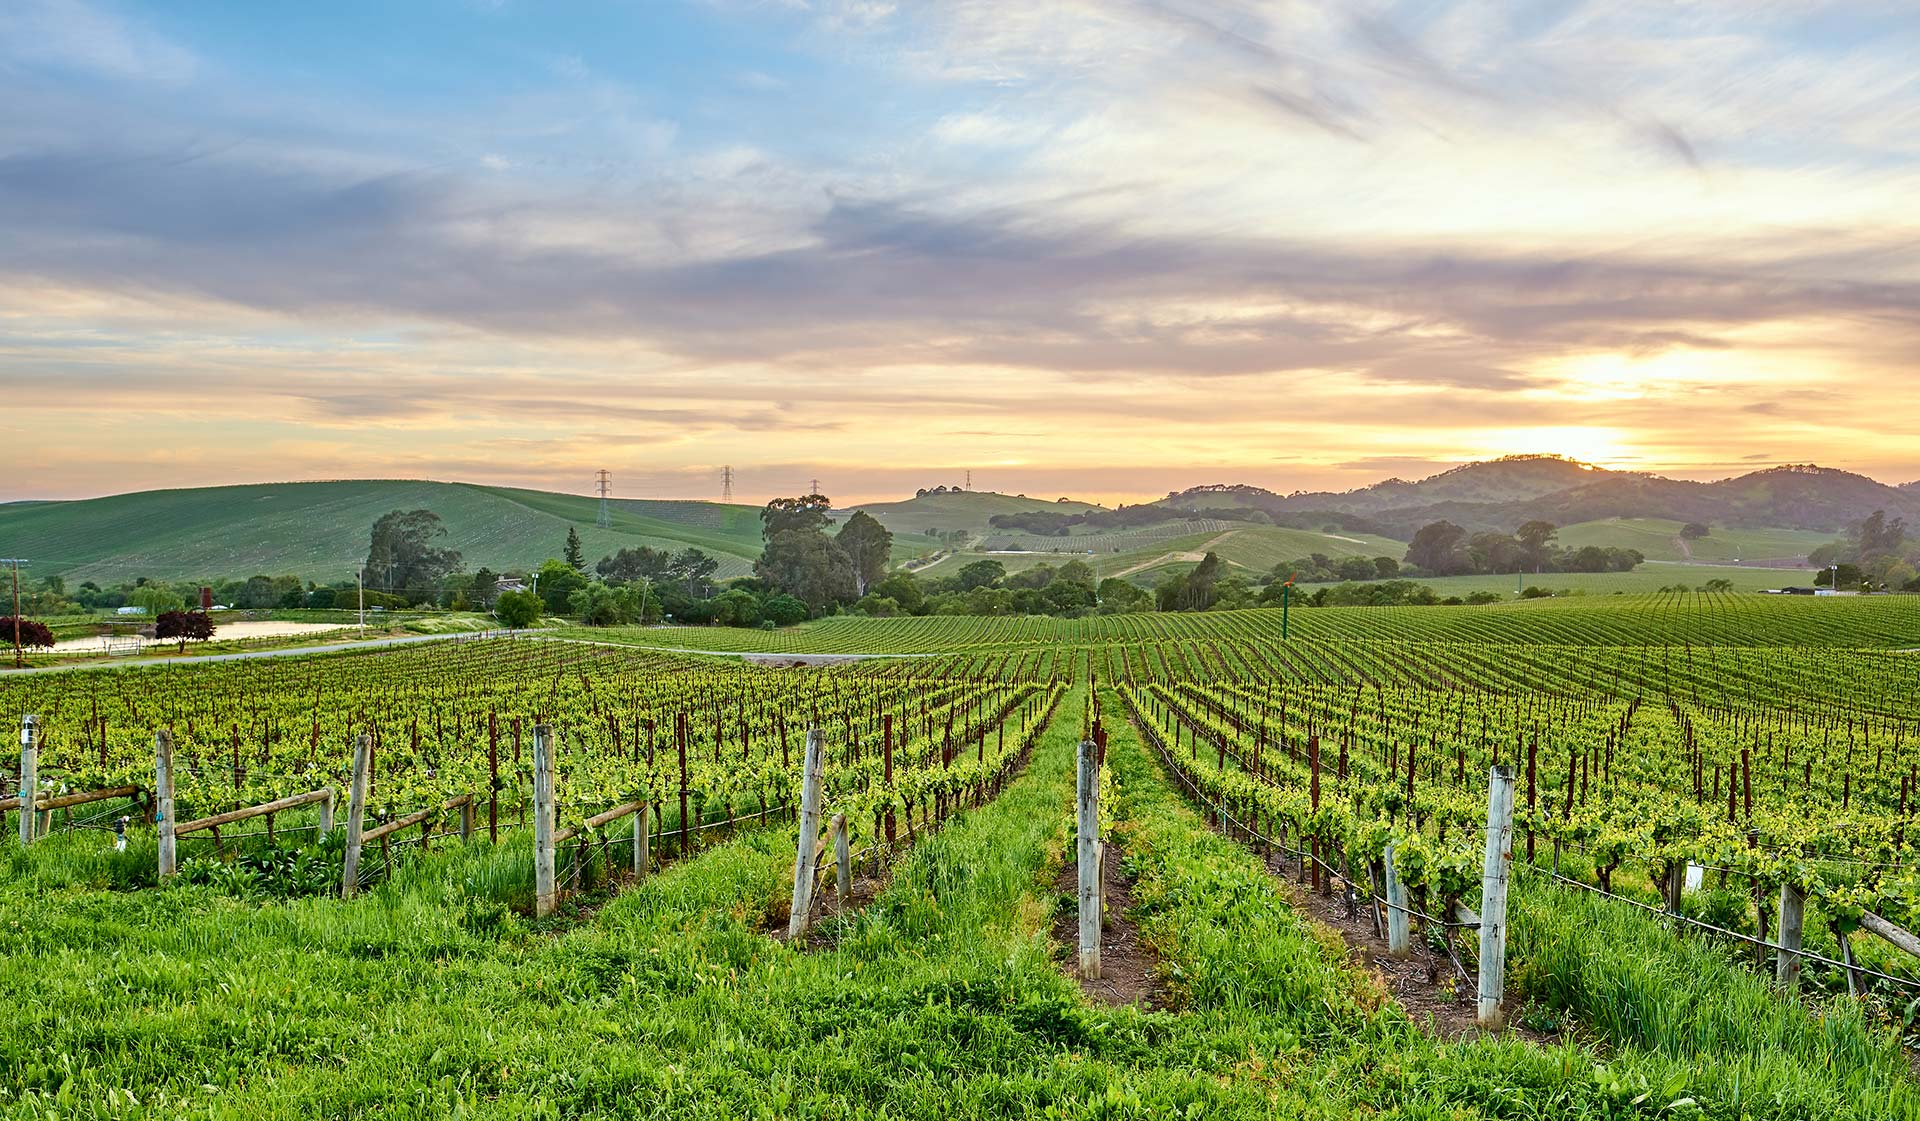 Malibu Canyon - Calabasas, CA - Vineyard